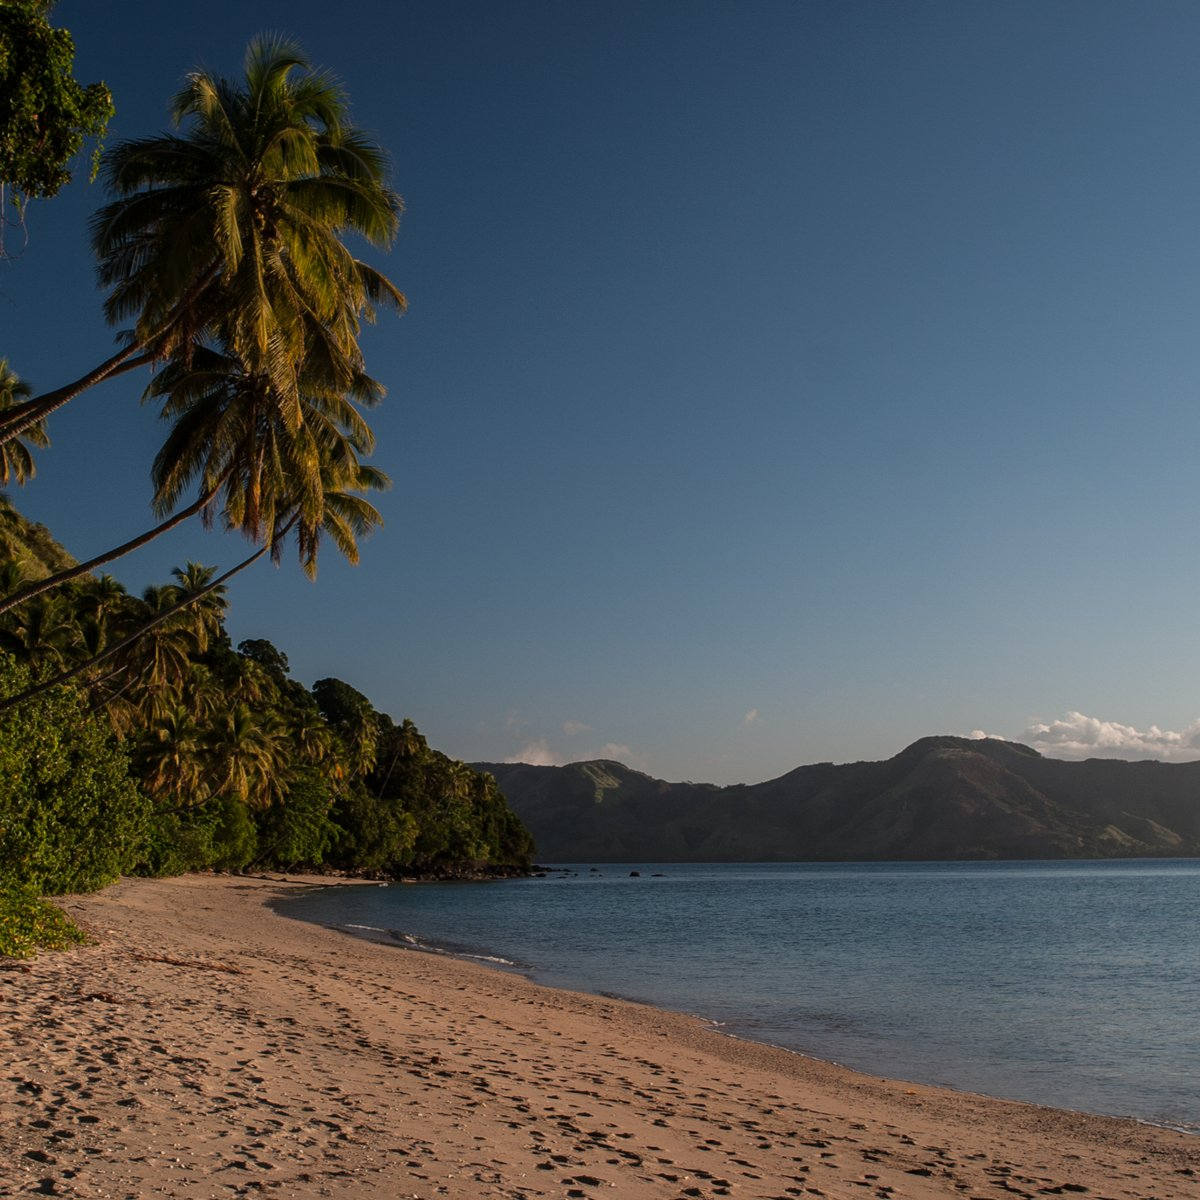 Beach on Kadavu Island, Fiji.